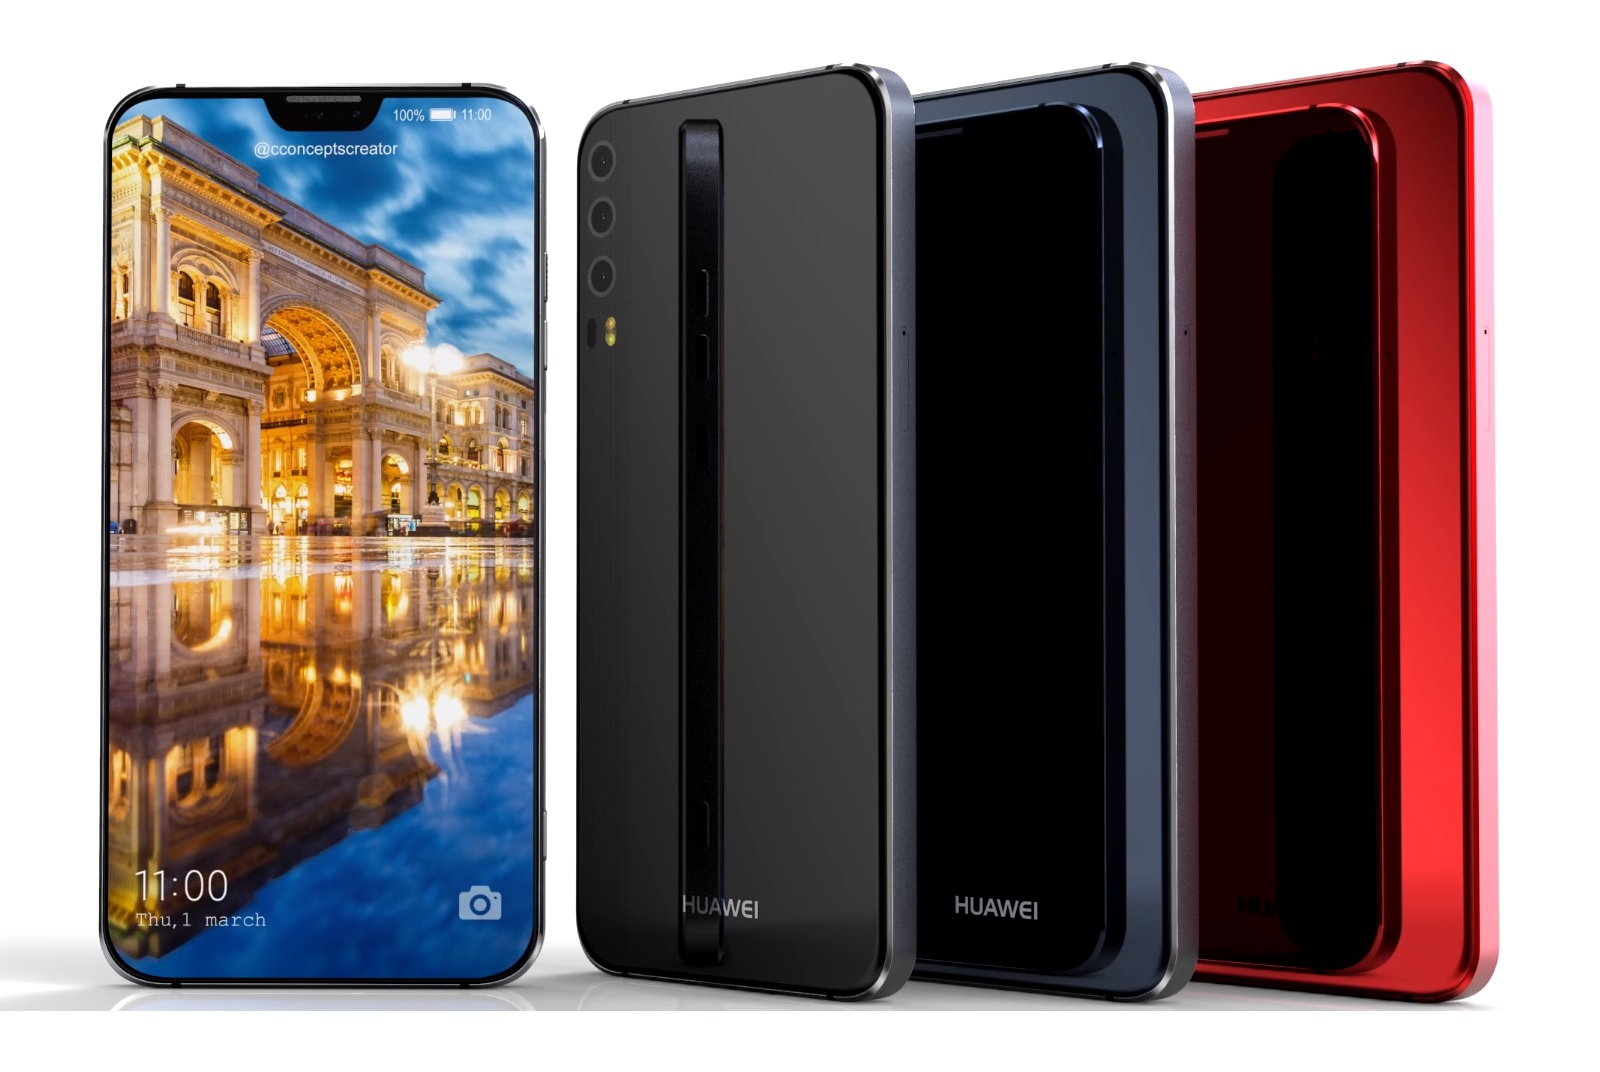 Huawei p11 konzept video zeigt randloses notch design mit triple cam news - Objet high tech insolite ...